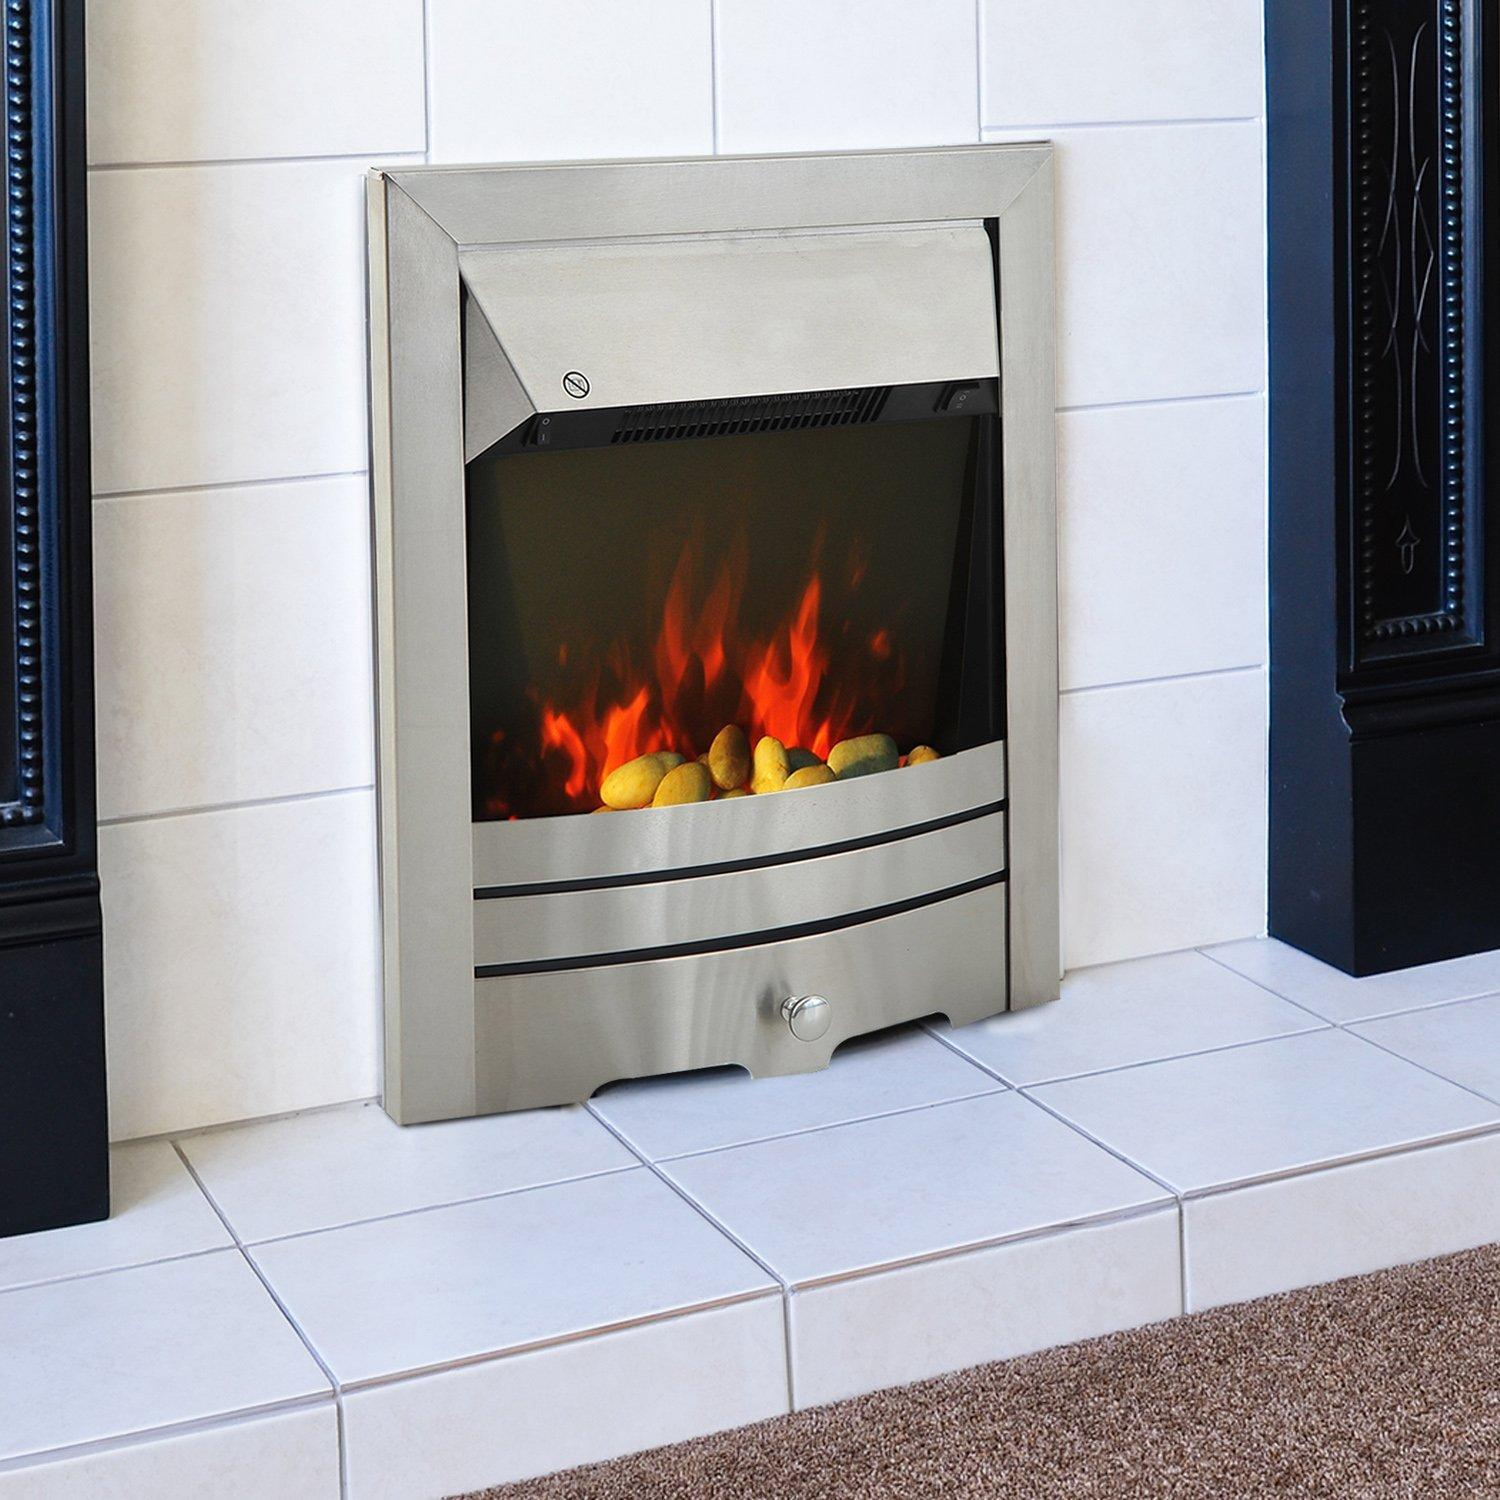 Homcom 2kw Stainless Steel Electric Fireplace Pebble